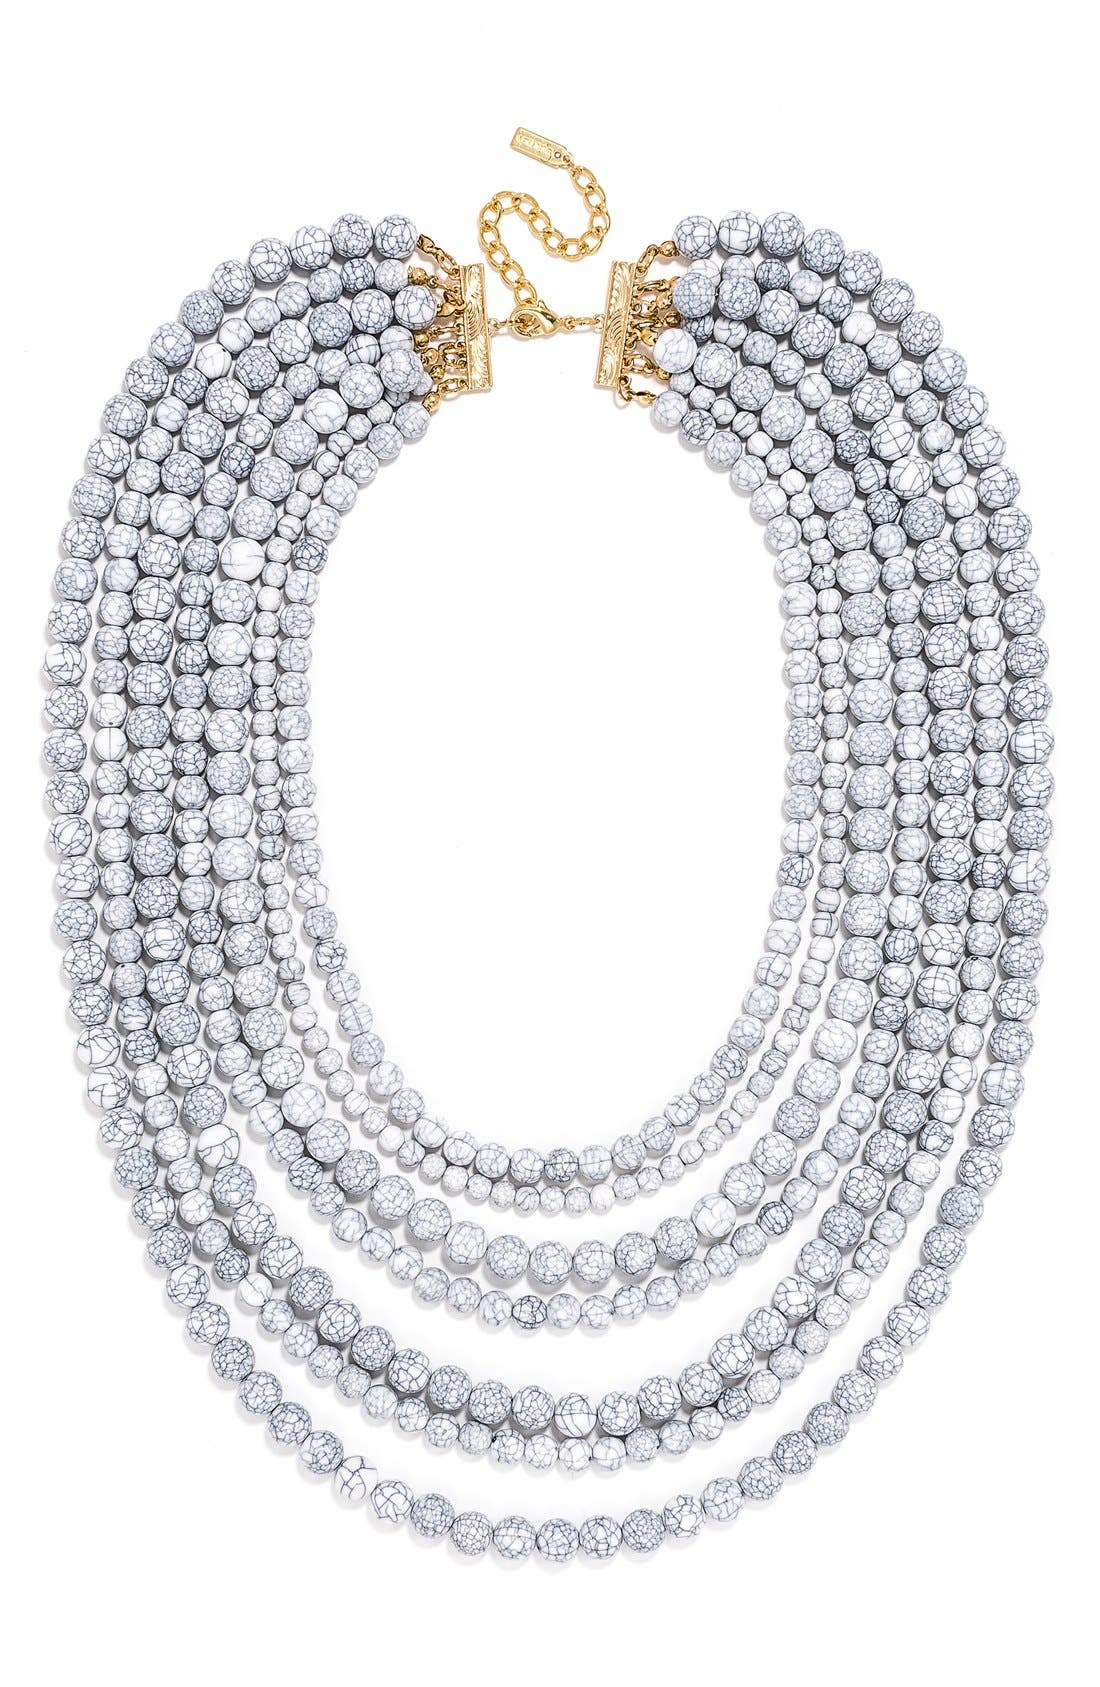 'Bold' Multistrand Beaded Statement Necklace,                             Main thumbnail 3, color,